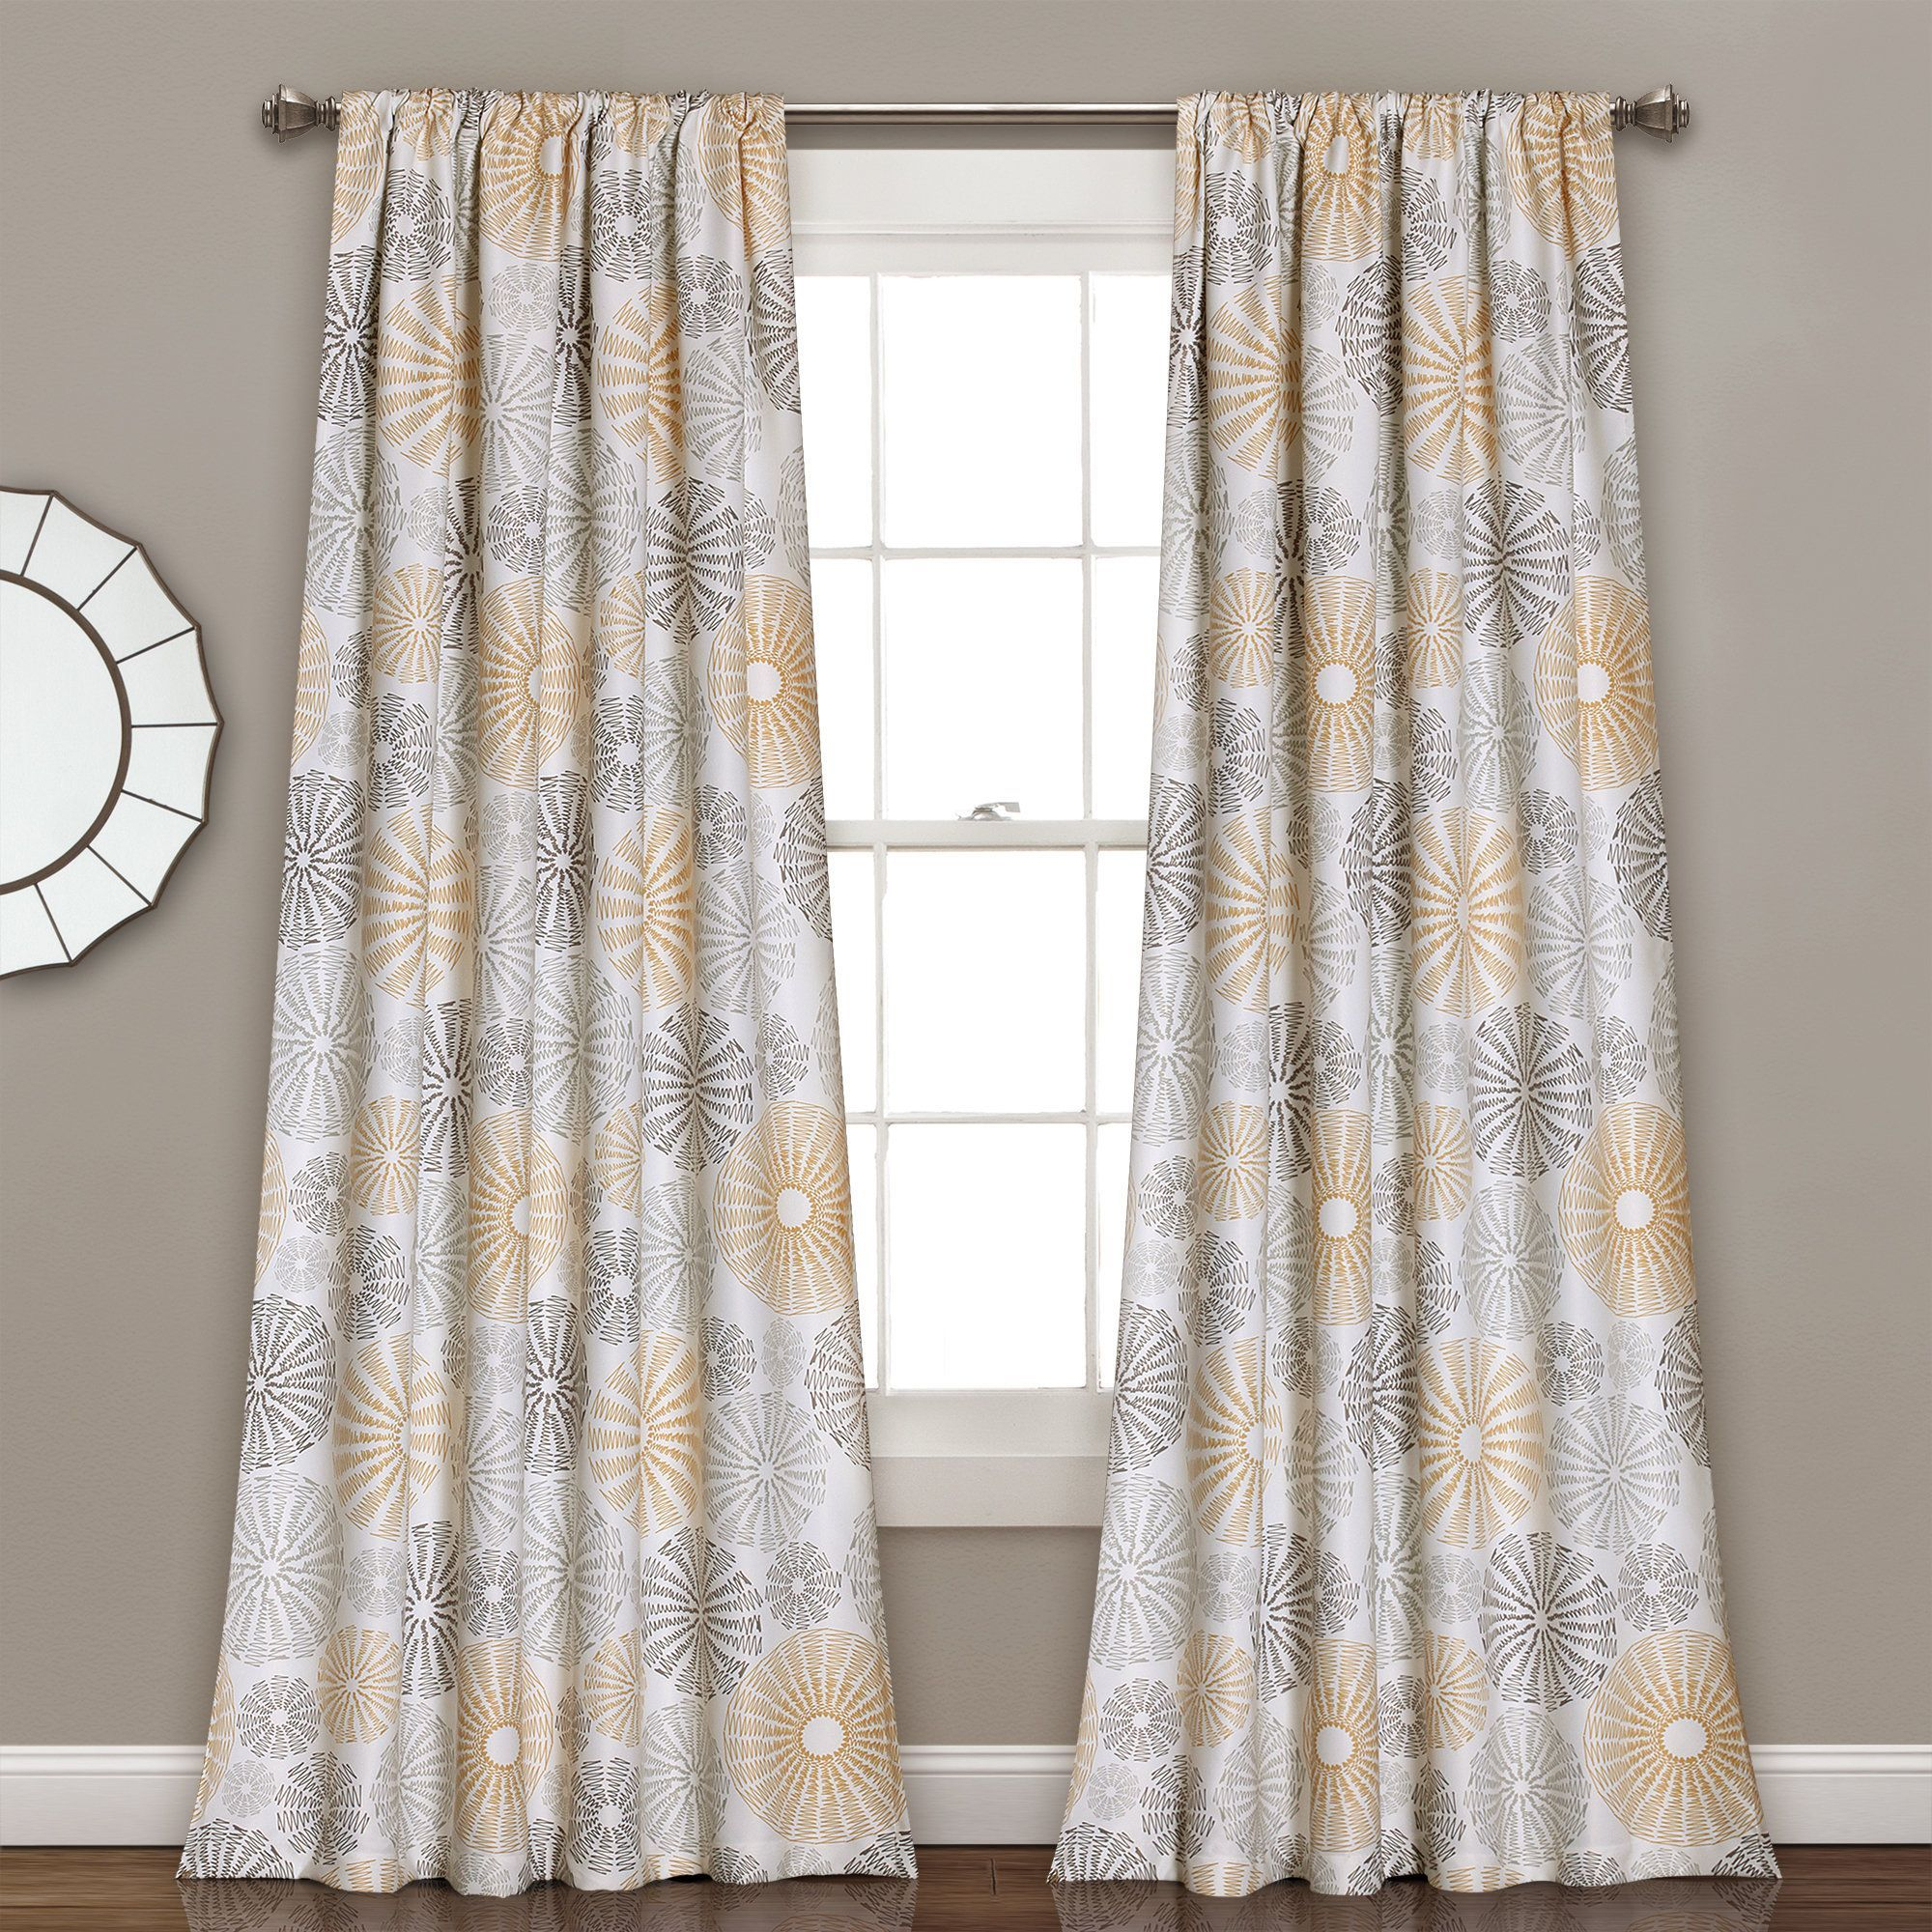 Lush Decor Multi Circles Room Darkening Window Curtain Panel Within Dolores Room Darkening Floral Curtain Panel Pairs (View 16 of 20)